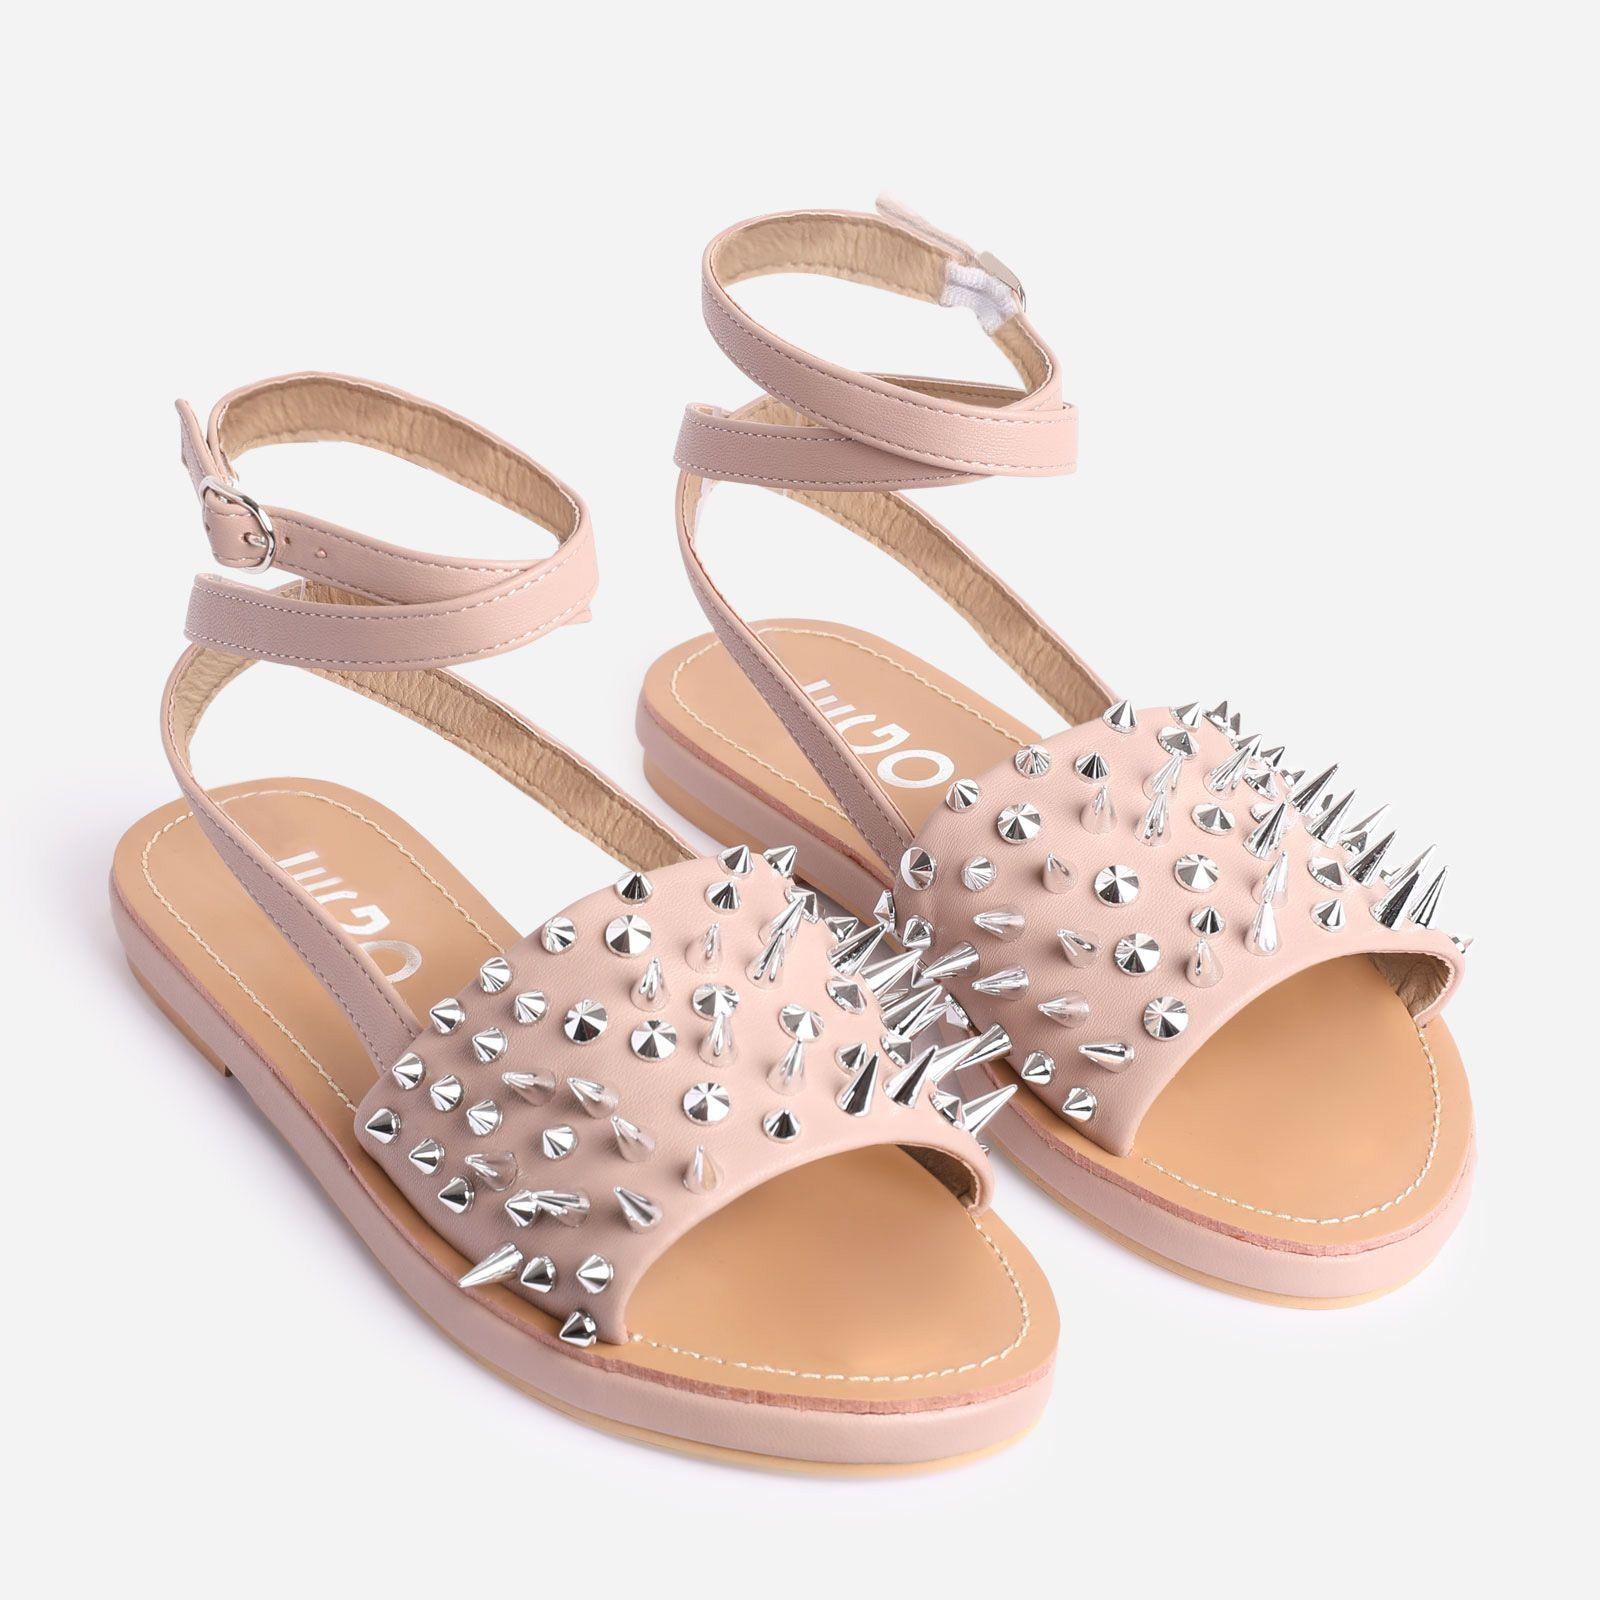 Hipster Studded Detail Flat Gladiator Sandal In Nude Faux Leather Image 2